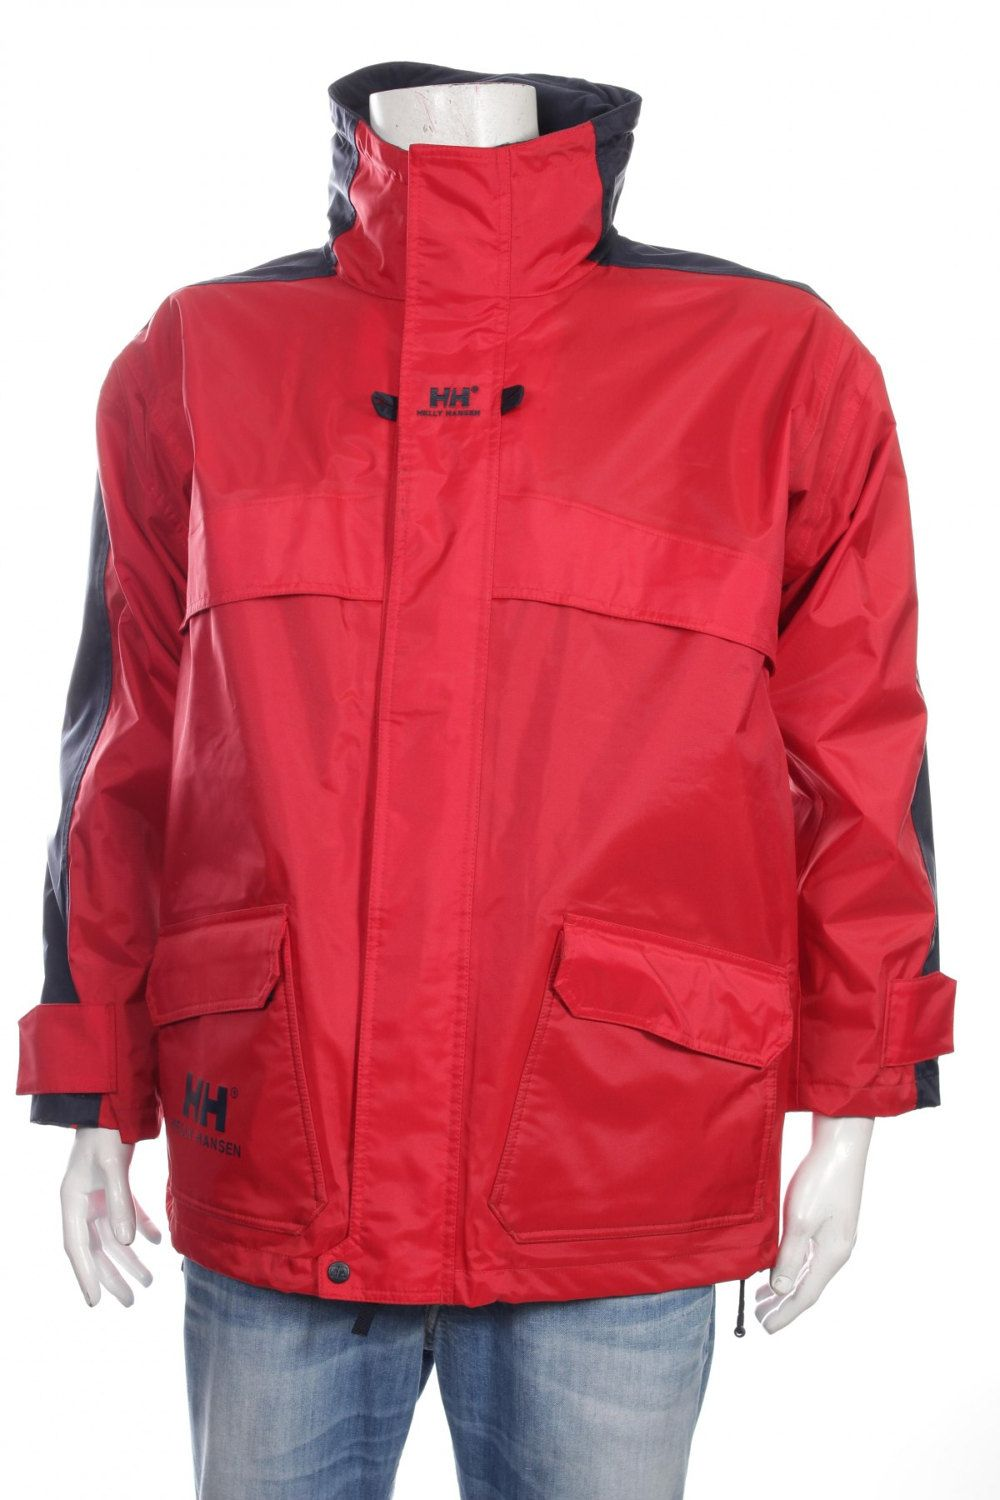 db4e02b0384c6 Vintage 90s Helly Hansen proof hooded jacket big logo color block red blue  size L by VapeoVintage on Etsy